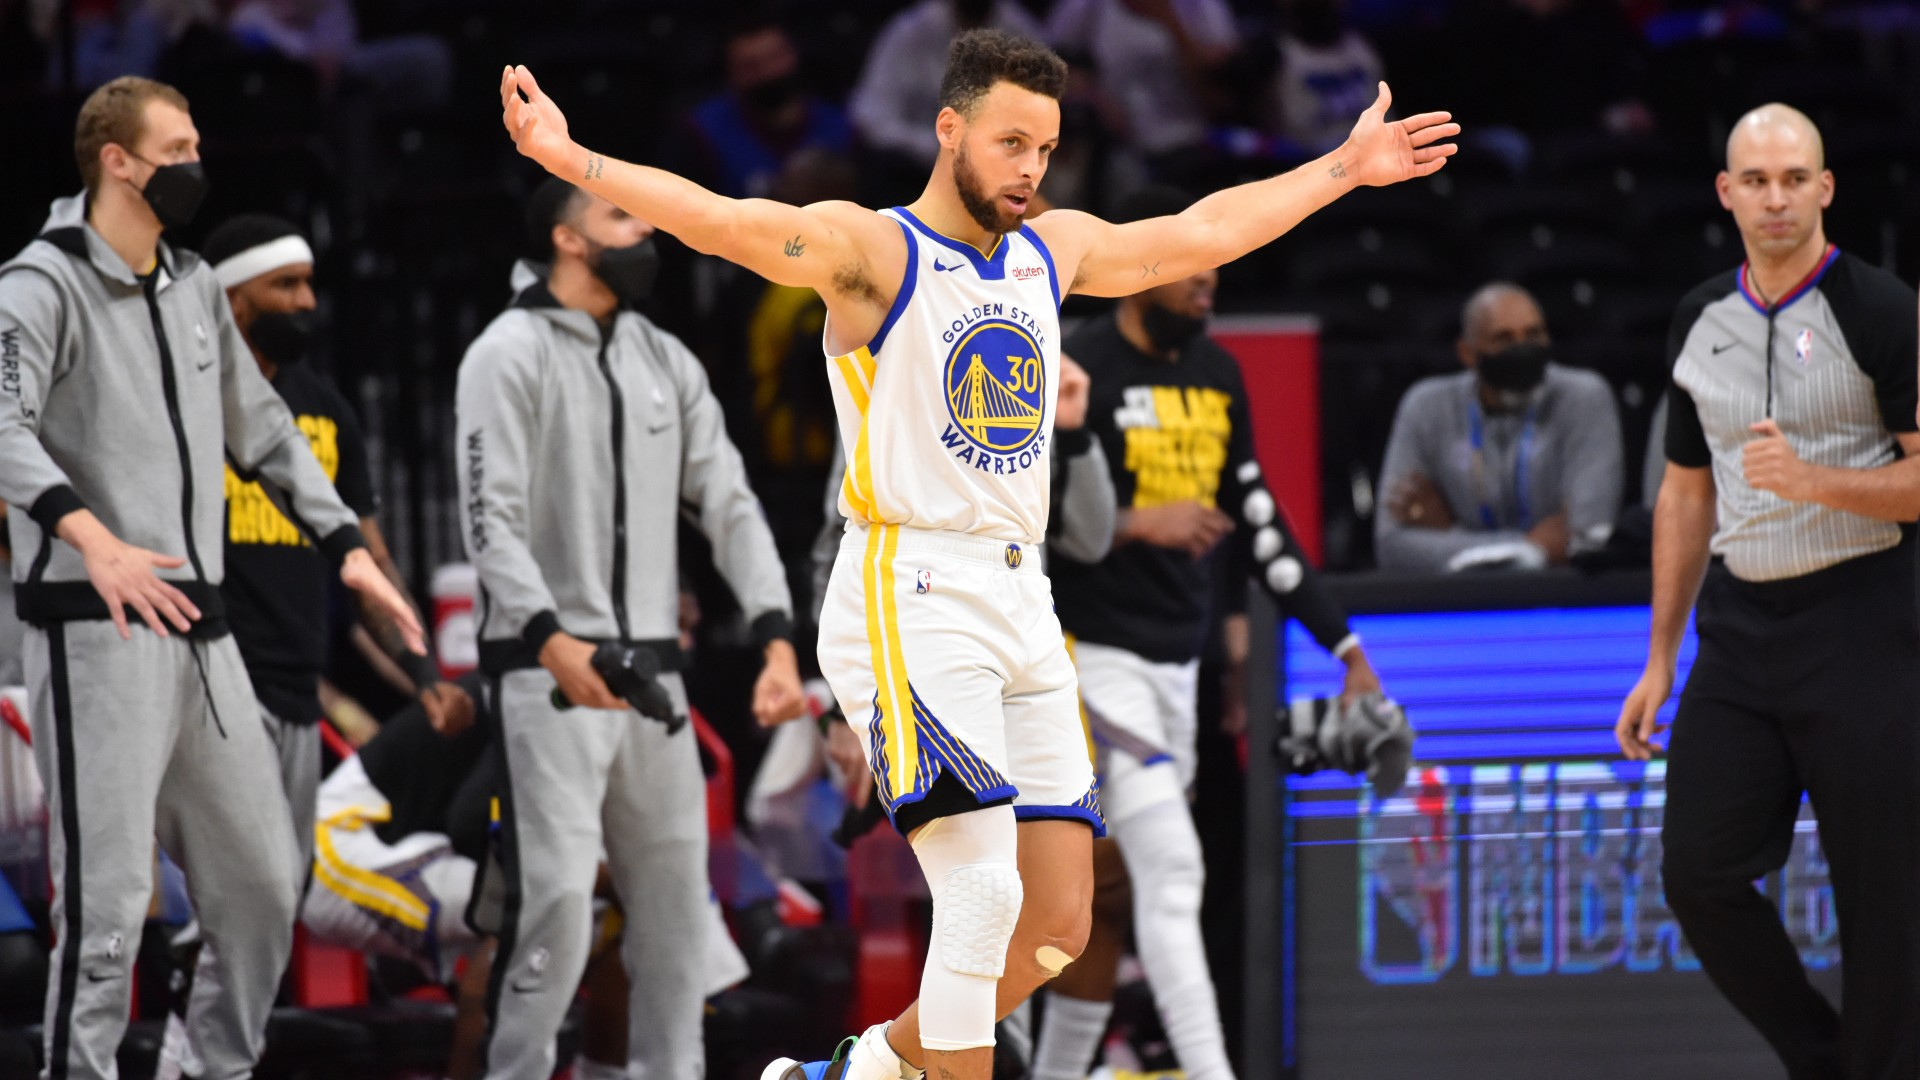 Curry drops 49 on 76ers in record-breaking display and Jokic fuels Nuggets with 47 as Suns stay hot